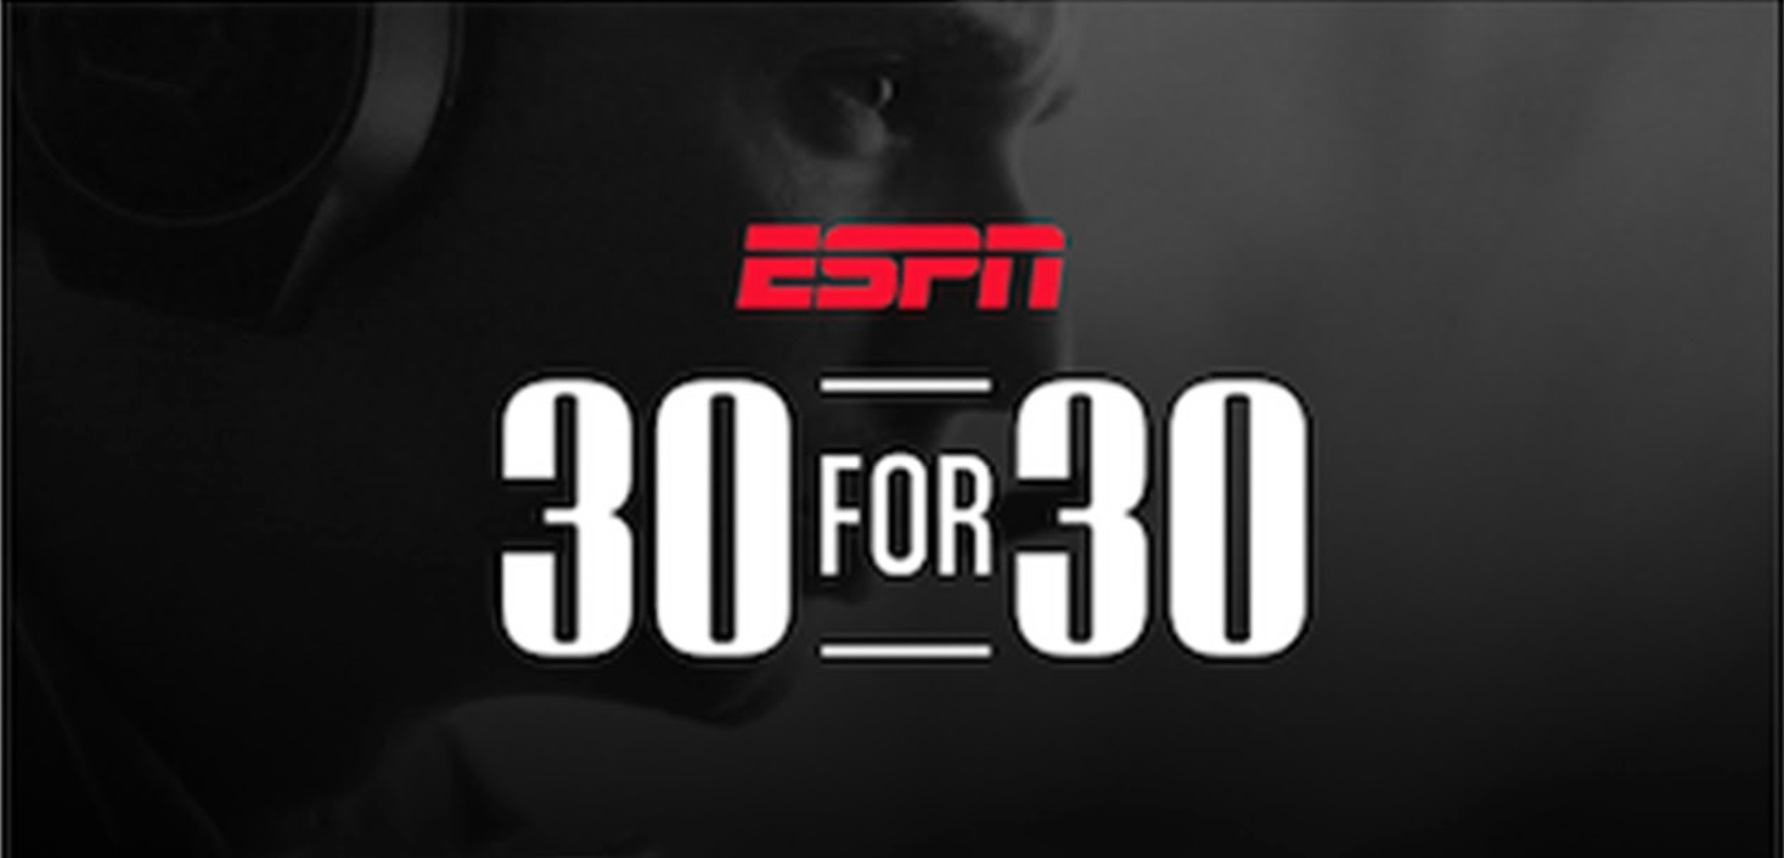 ESPN made a '30 for 30' spoof about Will's play-call, even going so far as to compare his style to that of Bill Belichick.